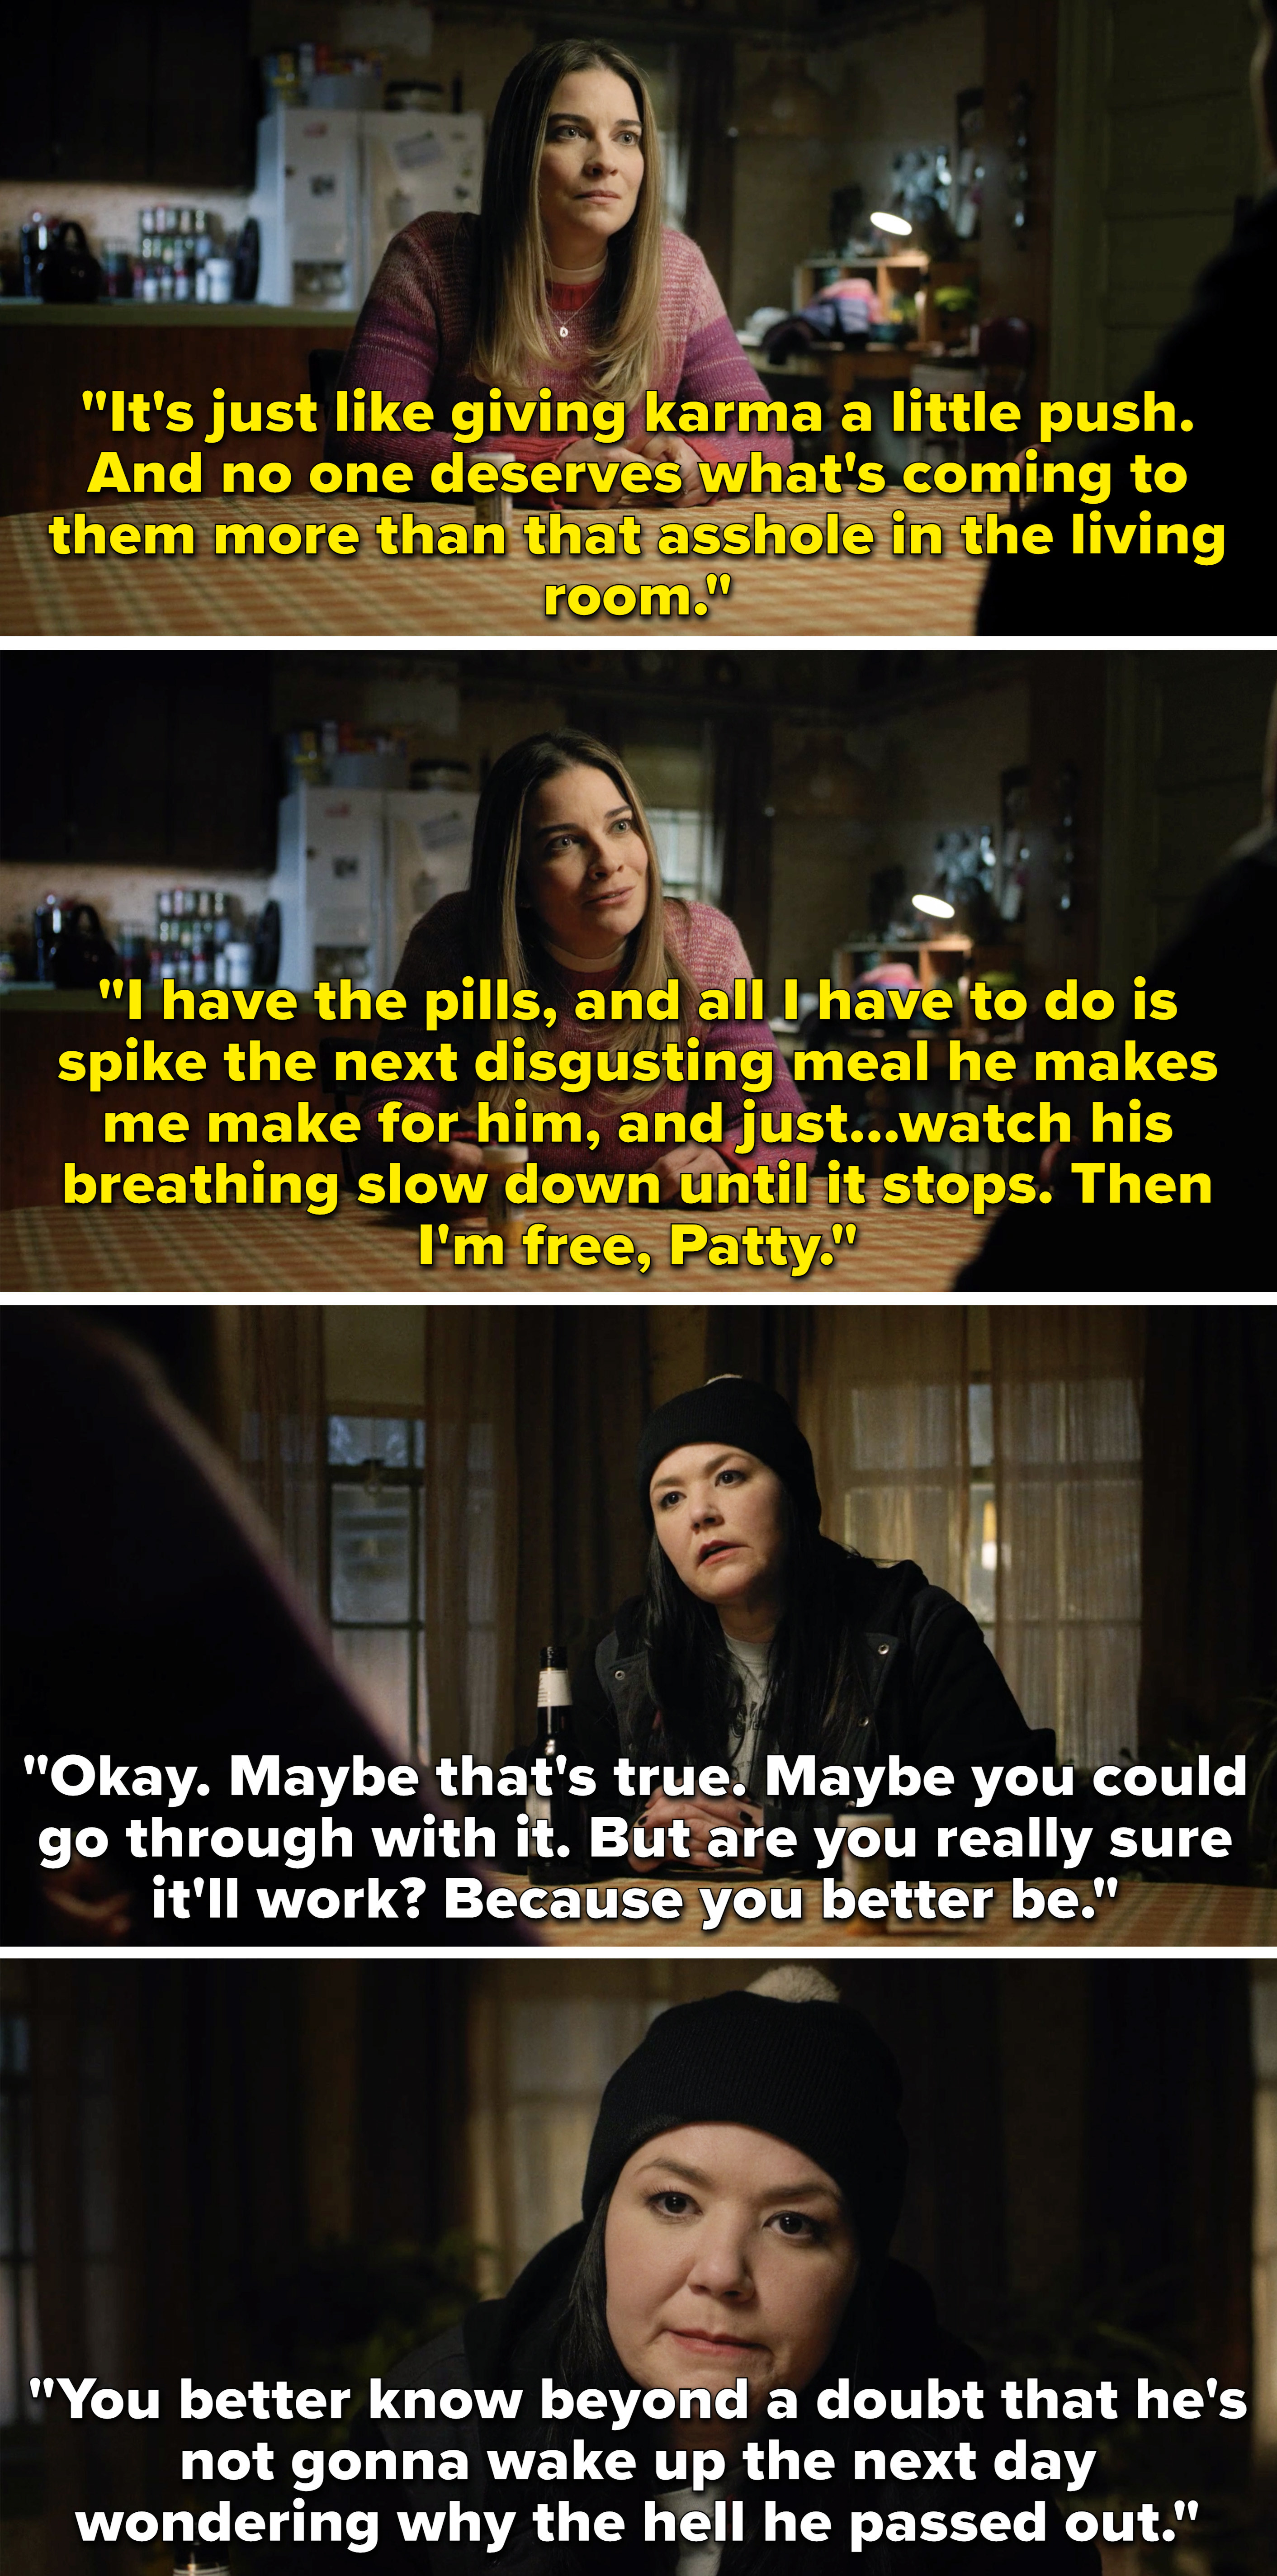 Allison explaining that she needs to kill Kevin and can, and Patty saying she better be sure it works or else Kevin is not going to be happy